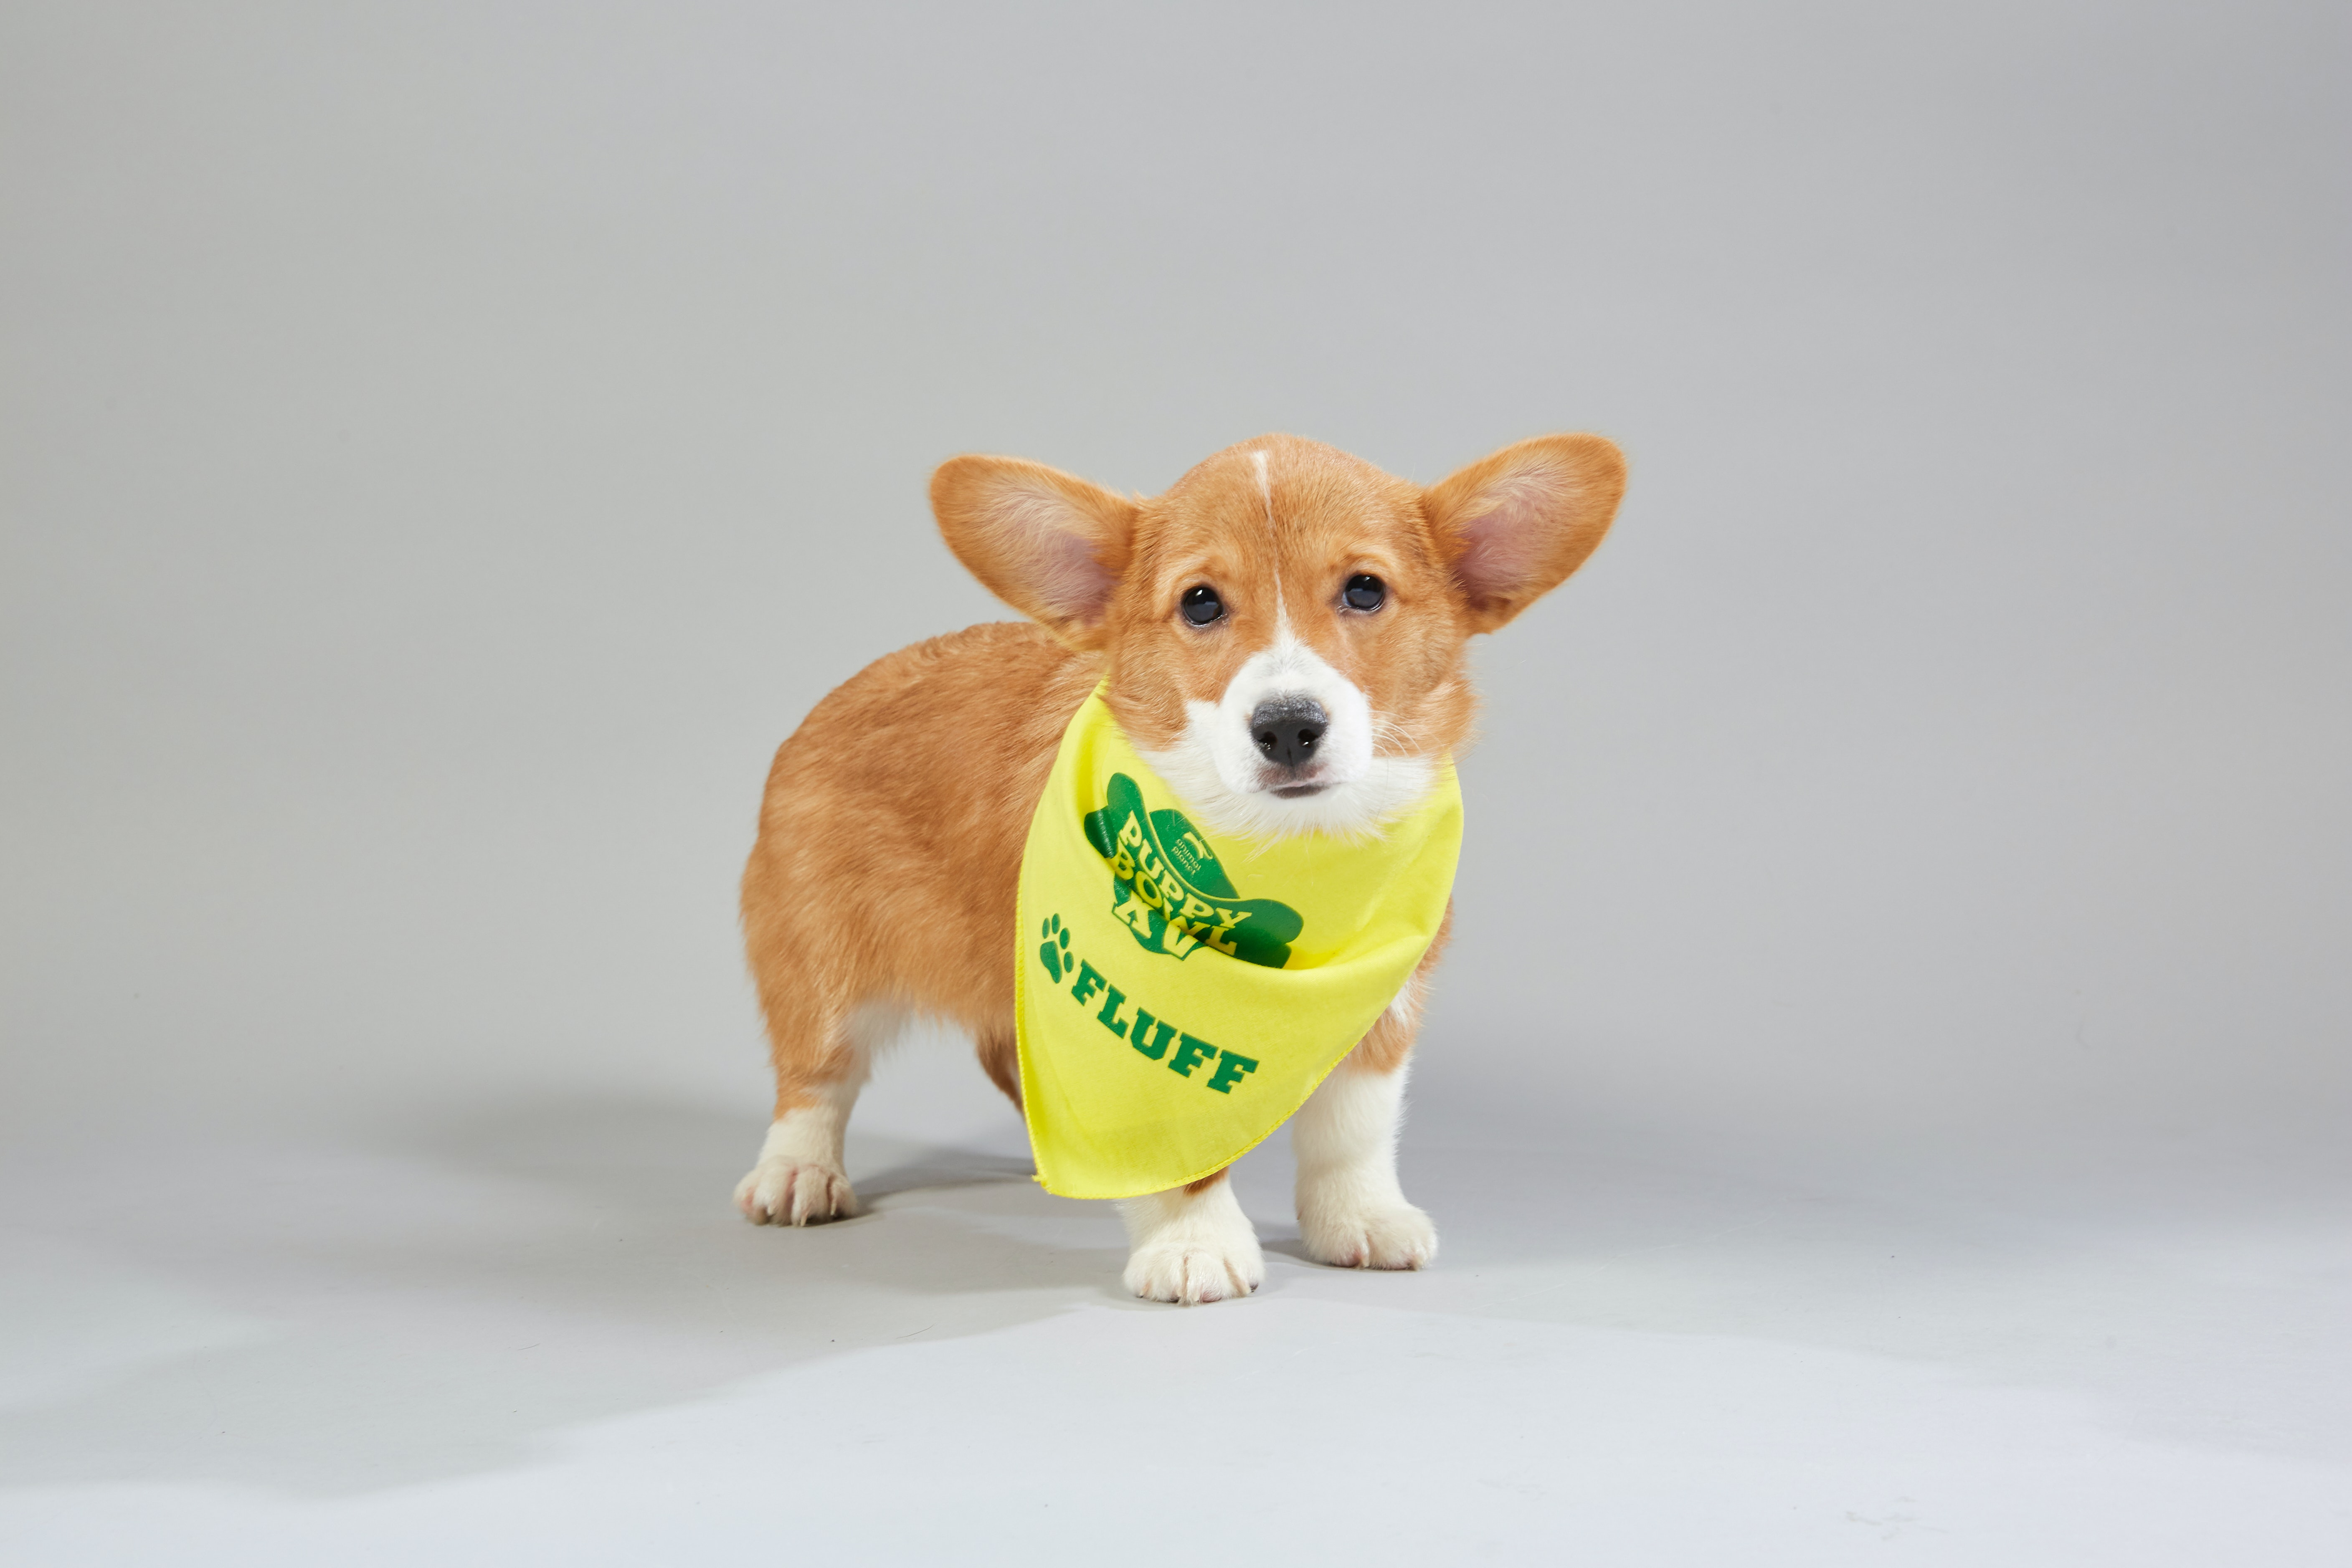 The 2019 Puppy Bowl Lineup Is Here To Show Off The Cutest